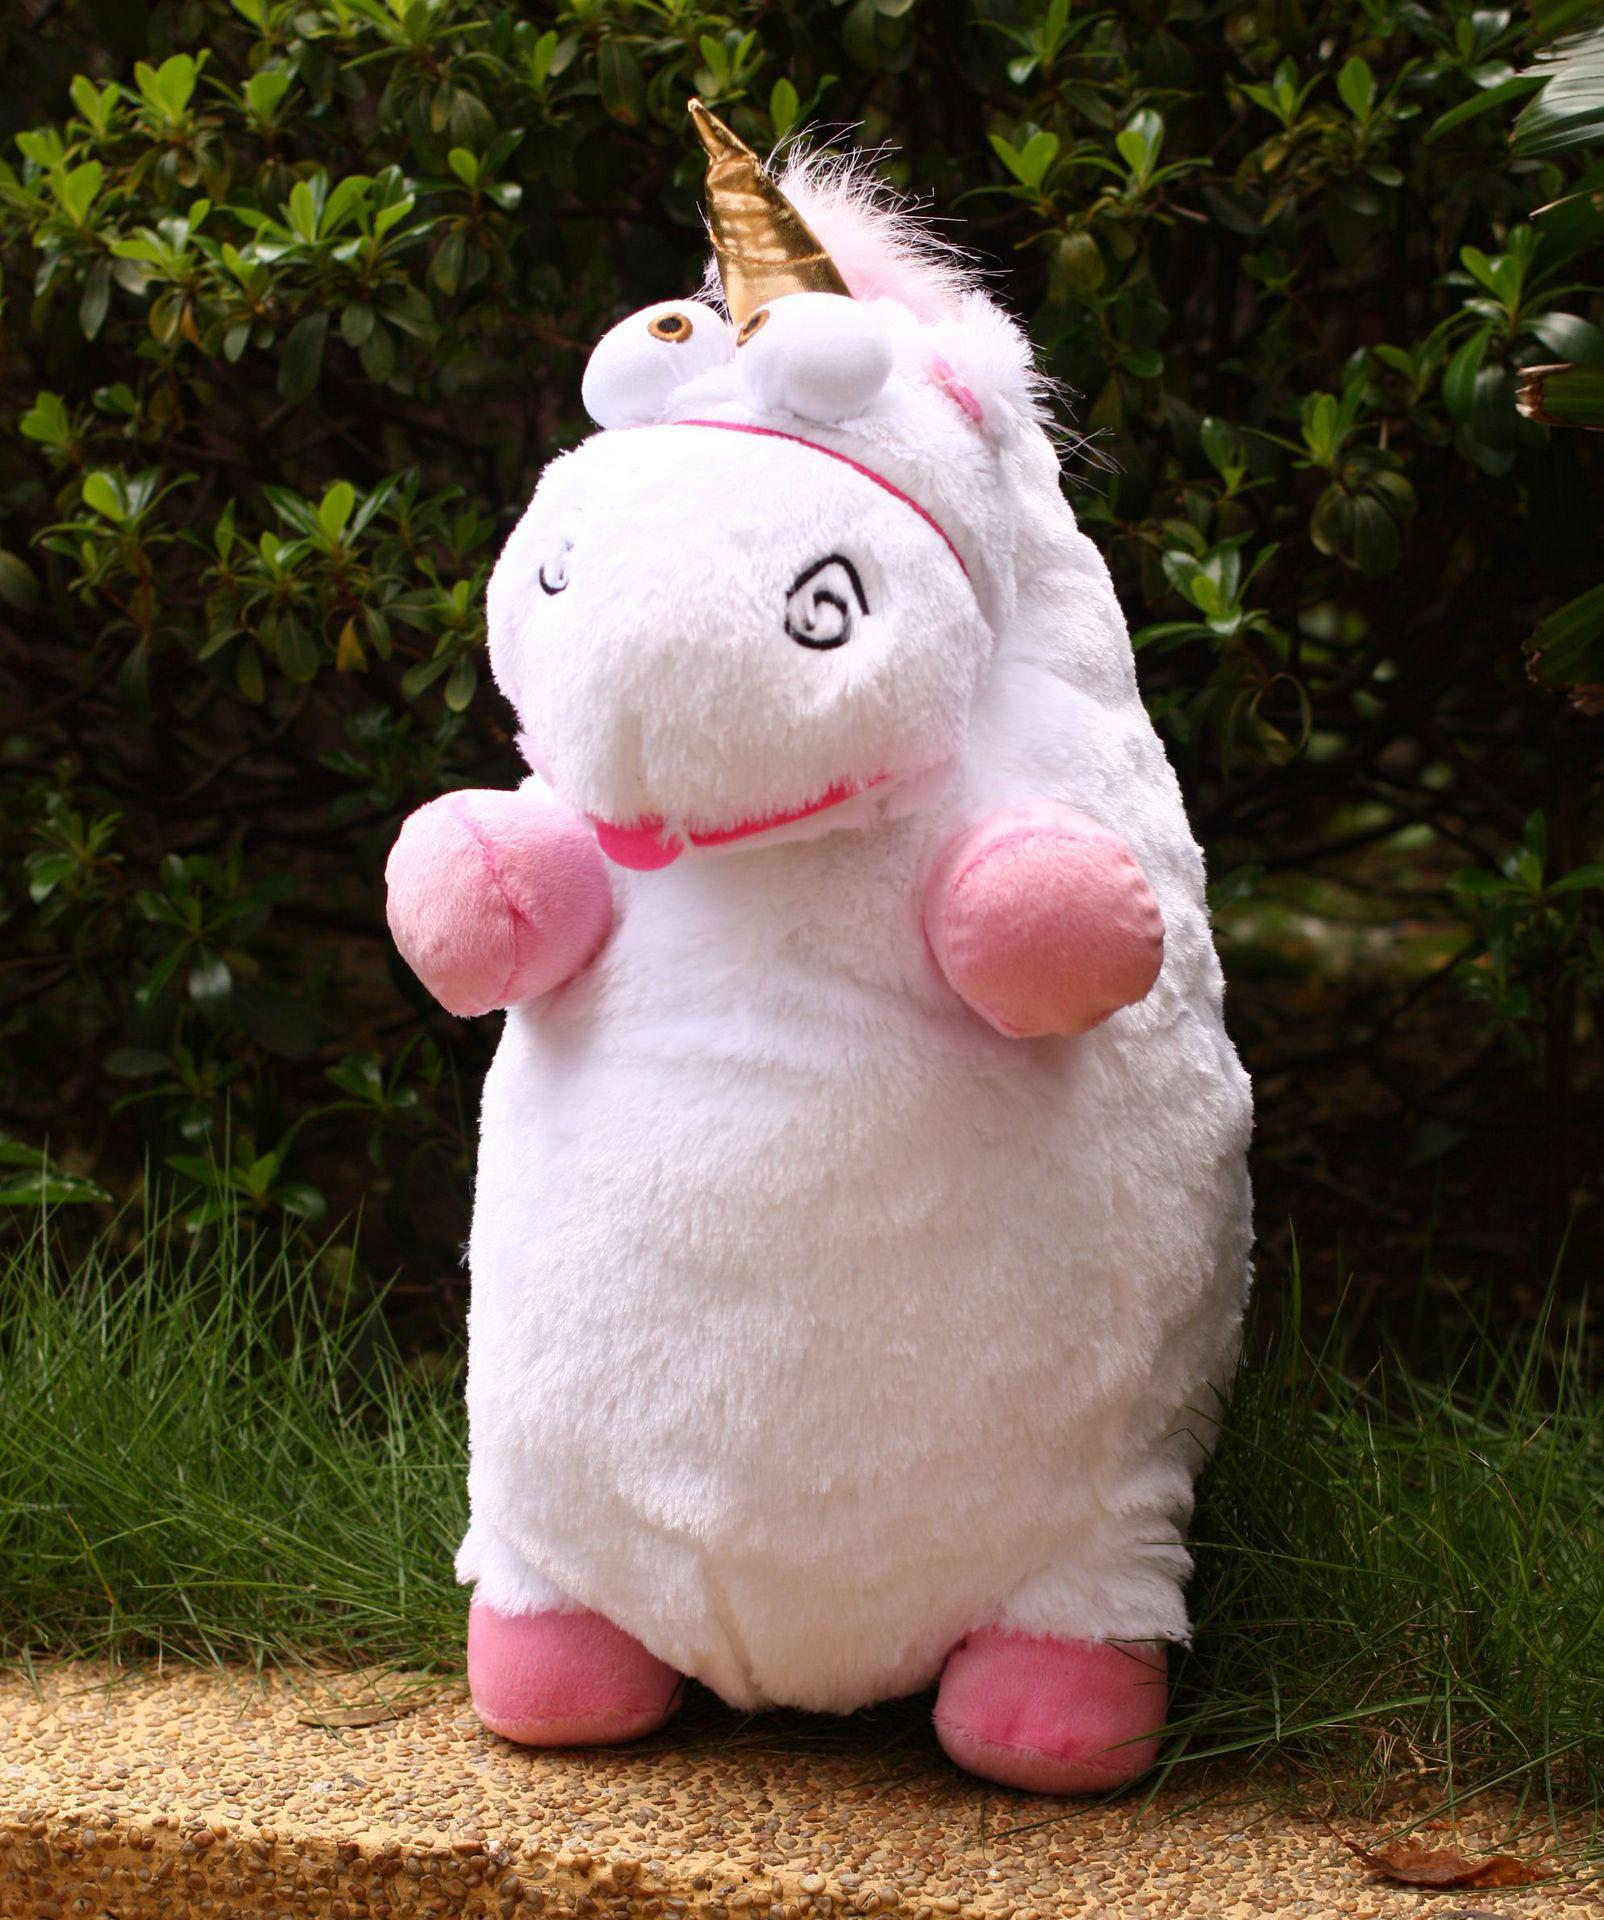 Despicable Me Fluffy Unicorn Plush Pillow Toy Doll Big 22 Inch